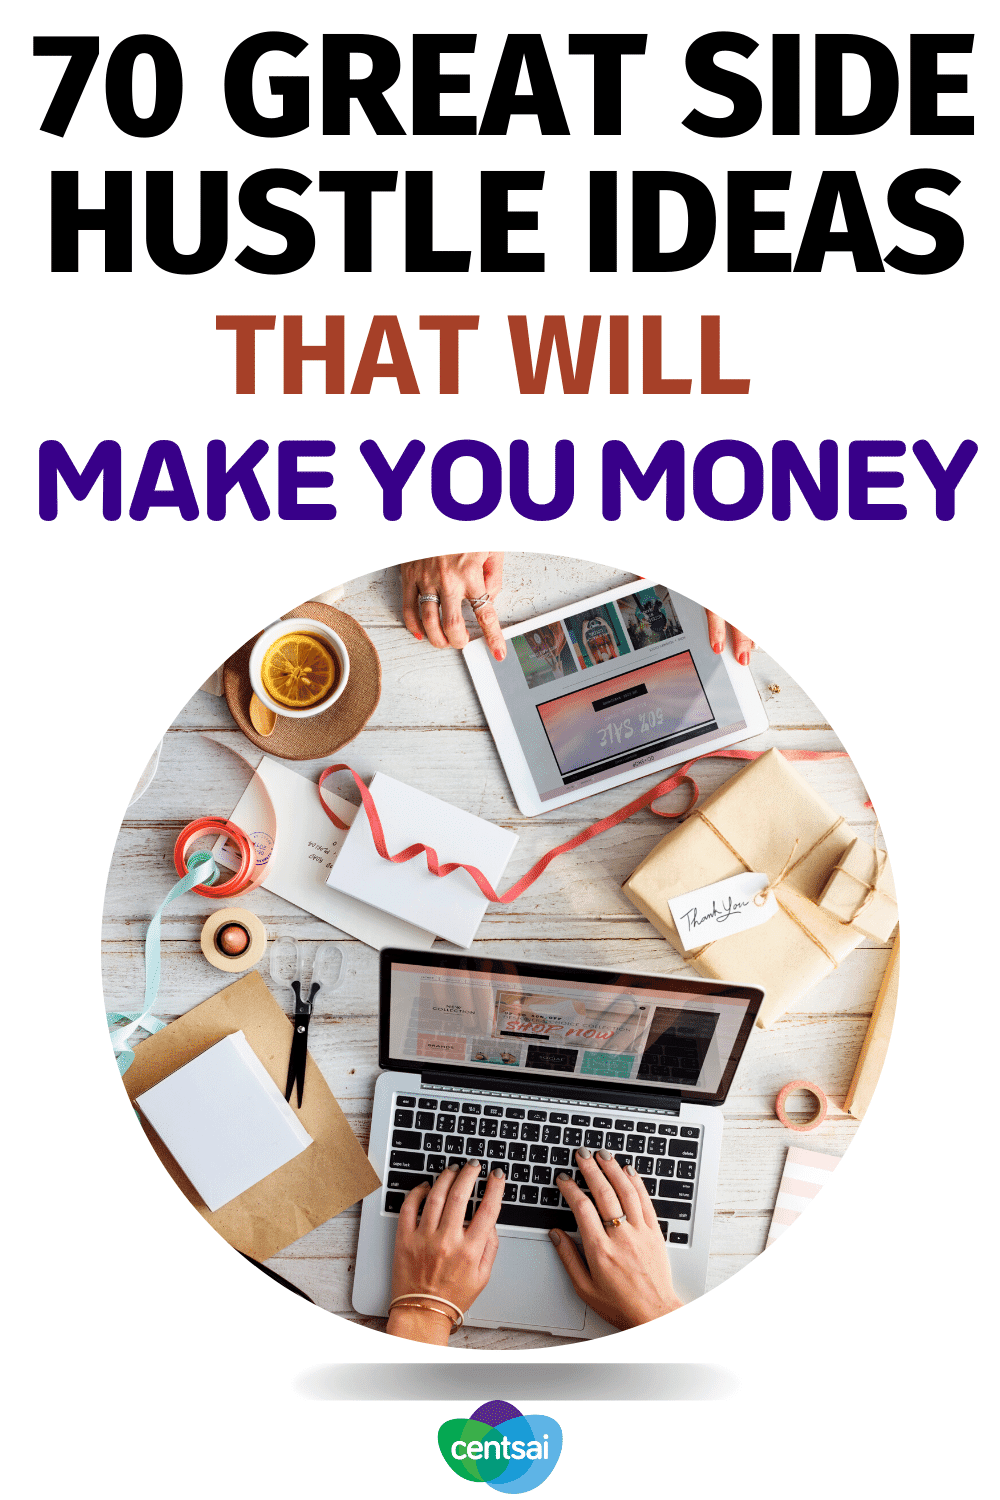 70 Great Side Hustle Ideas That Will Make You Money